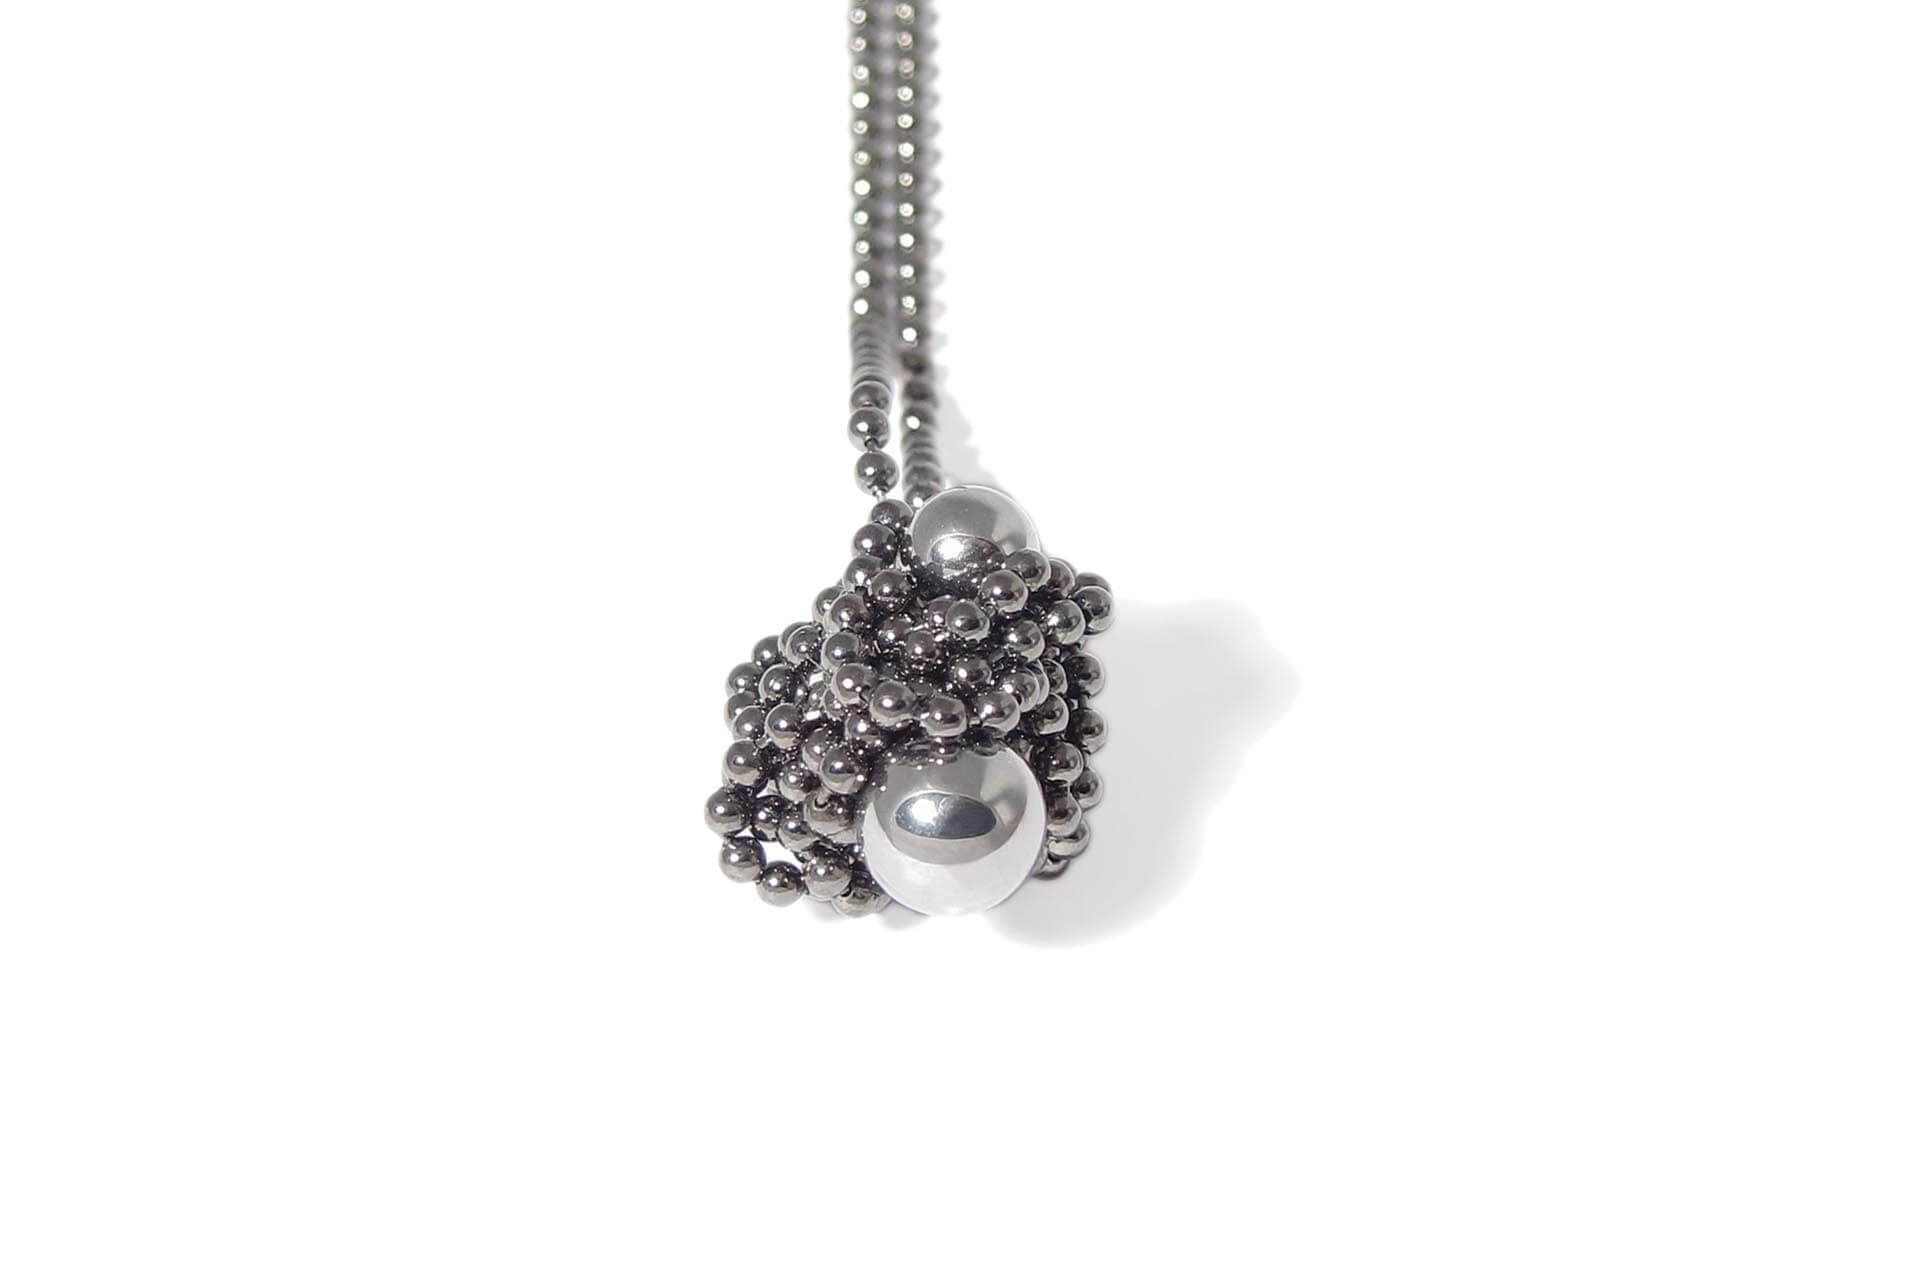 Iris Weyer magnetic necklace with steel balls